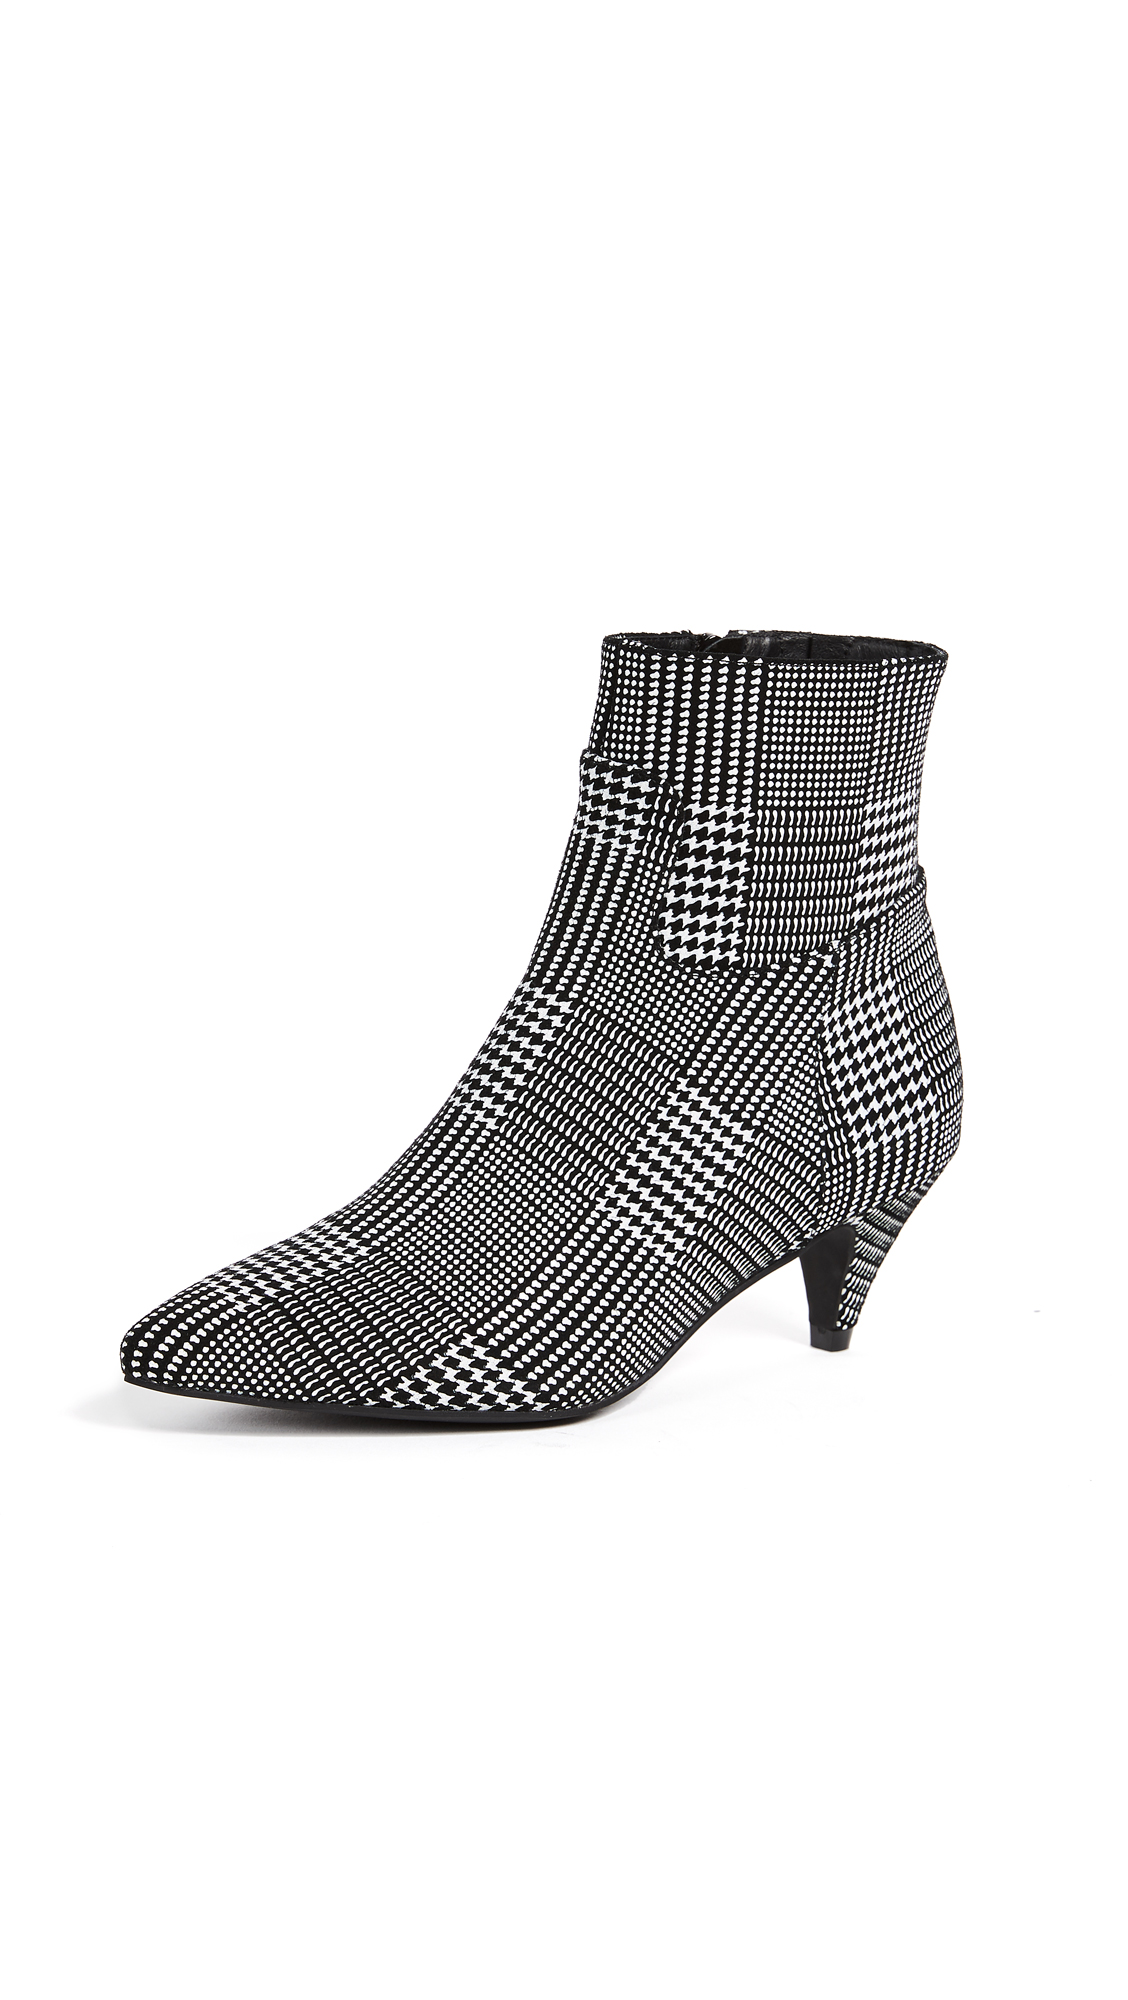 Jeffrey Campbell Muse Kitten Heel Booties - Black/White